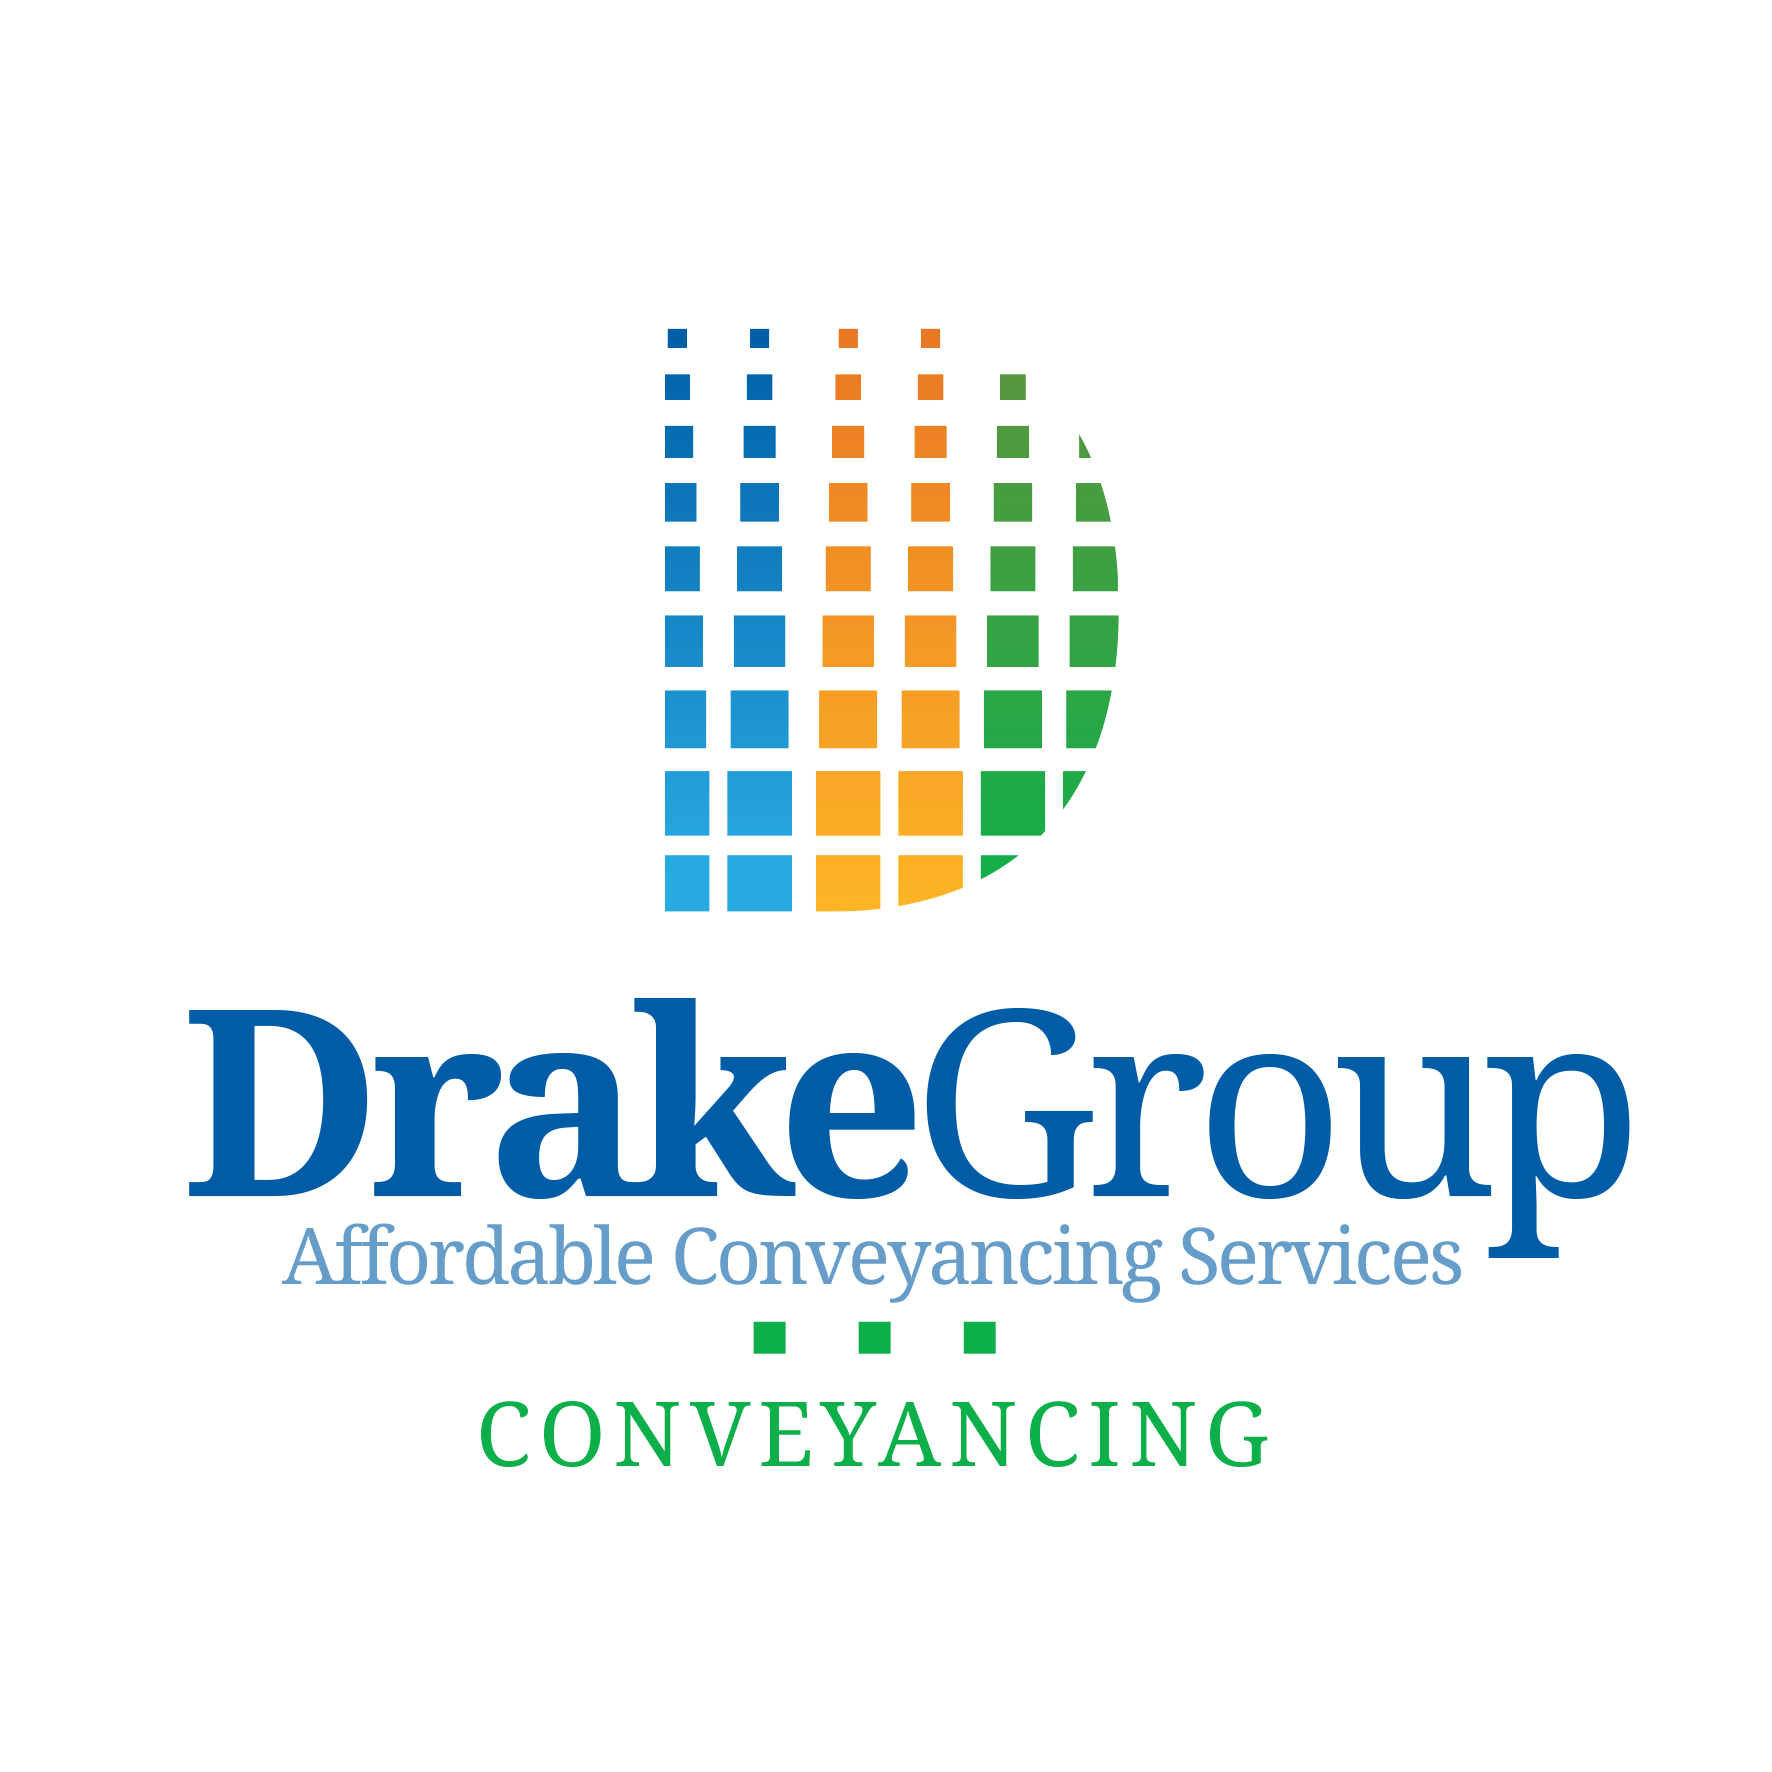 Affordable Conveyancing Services Logo